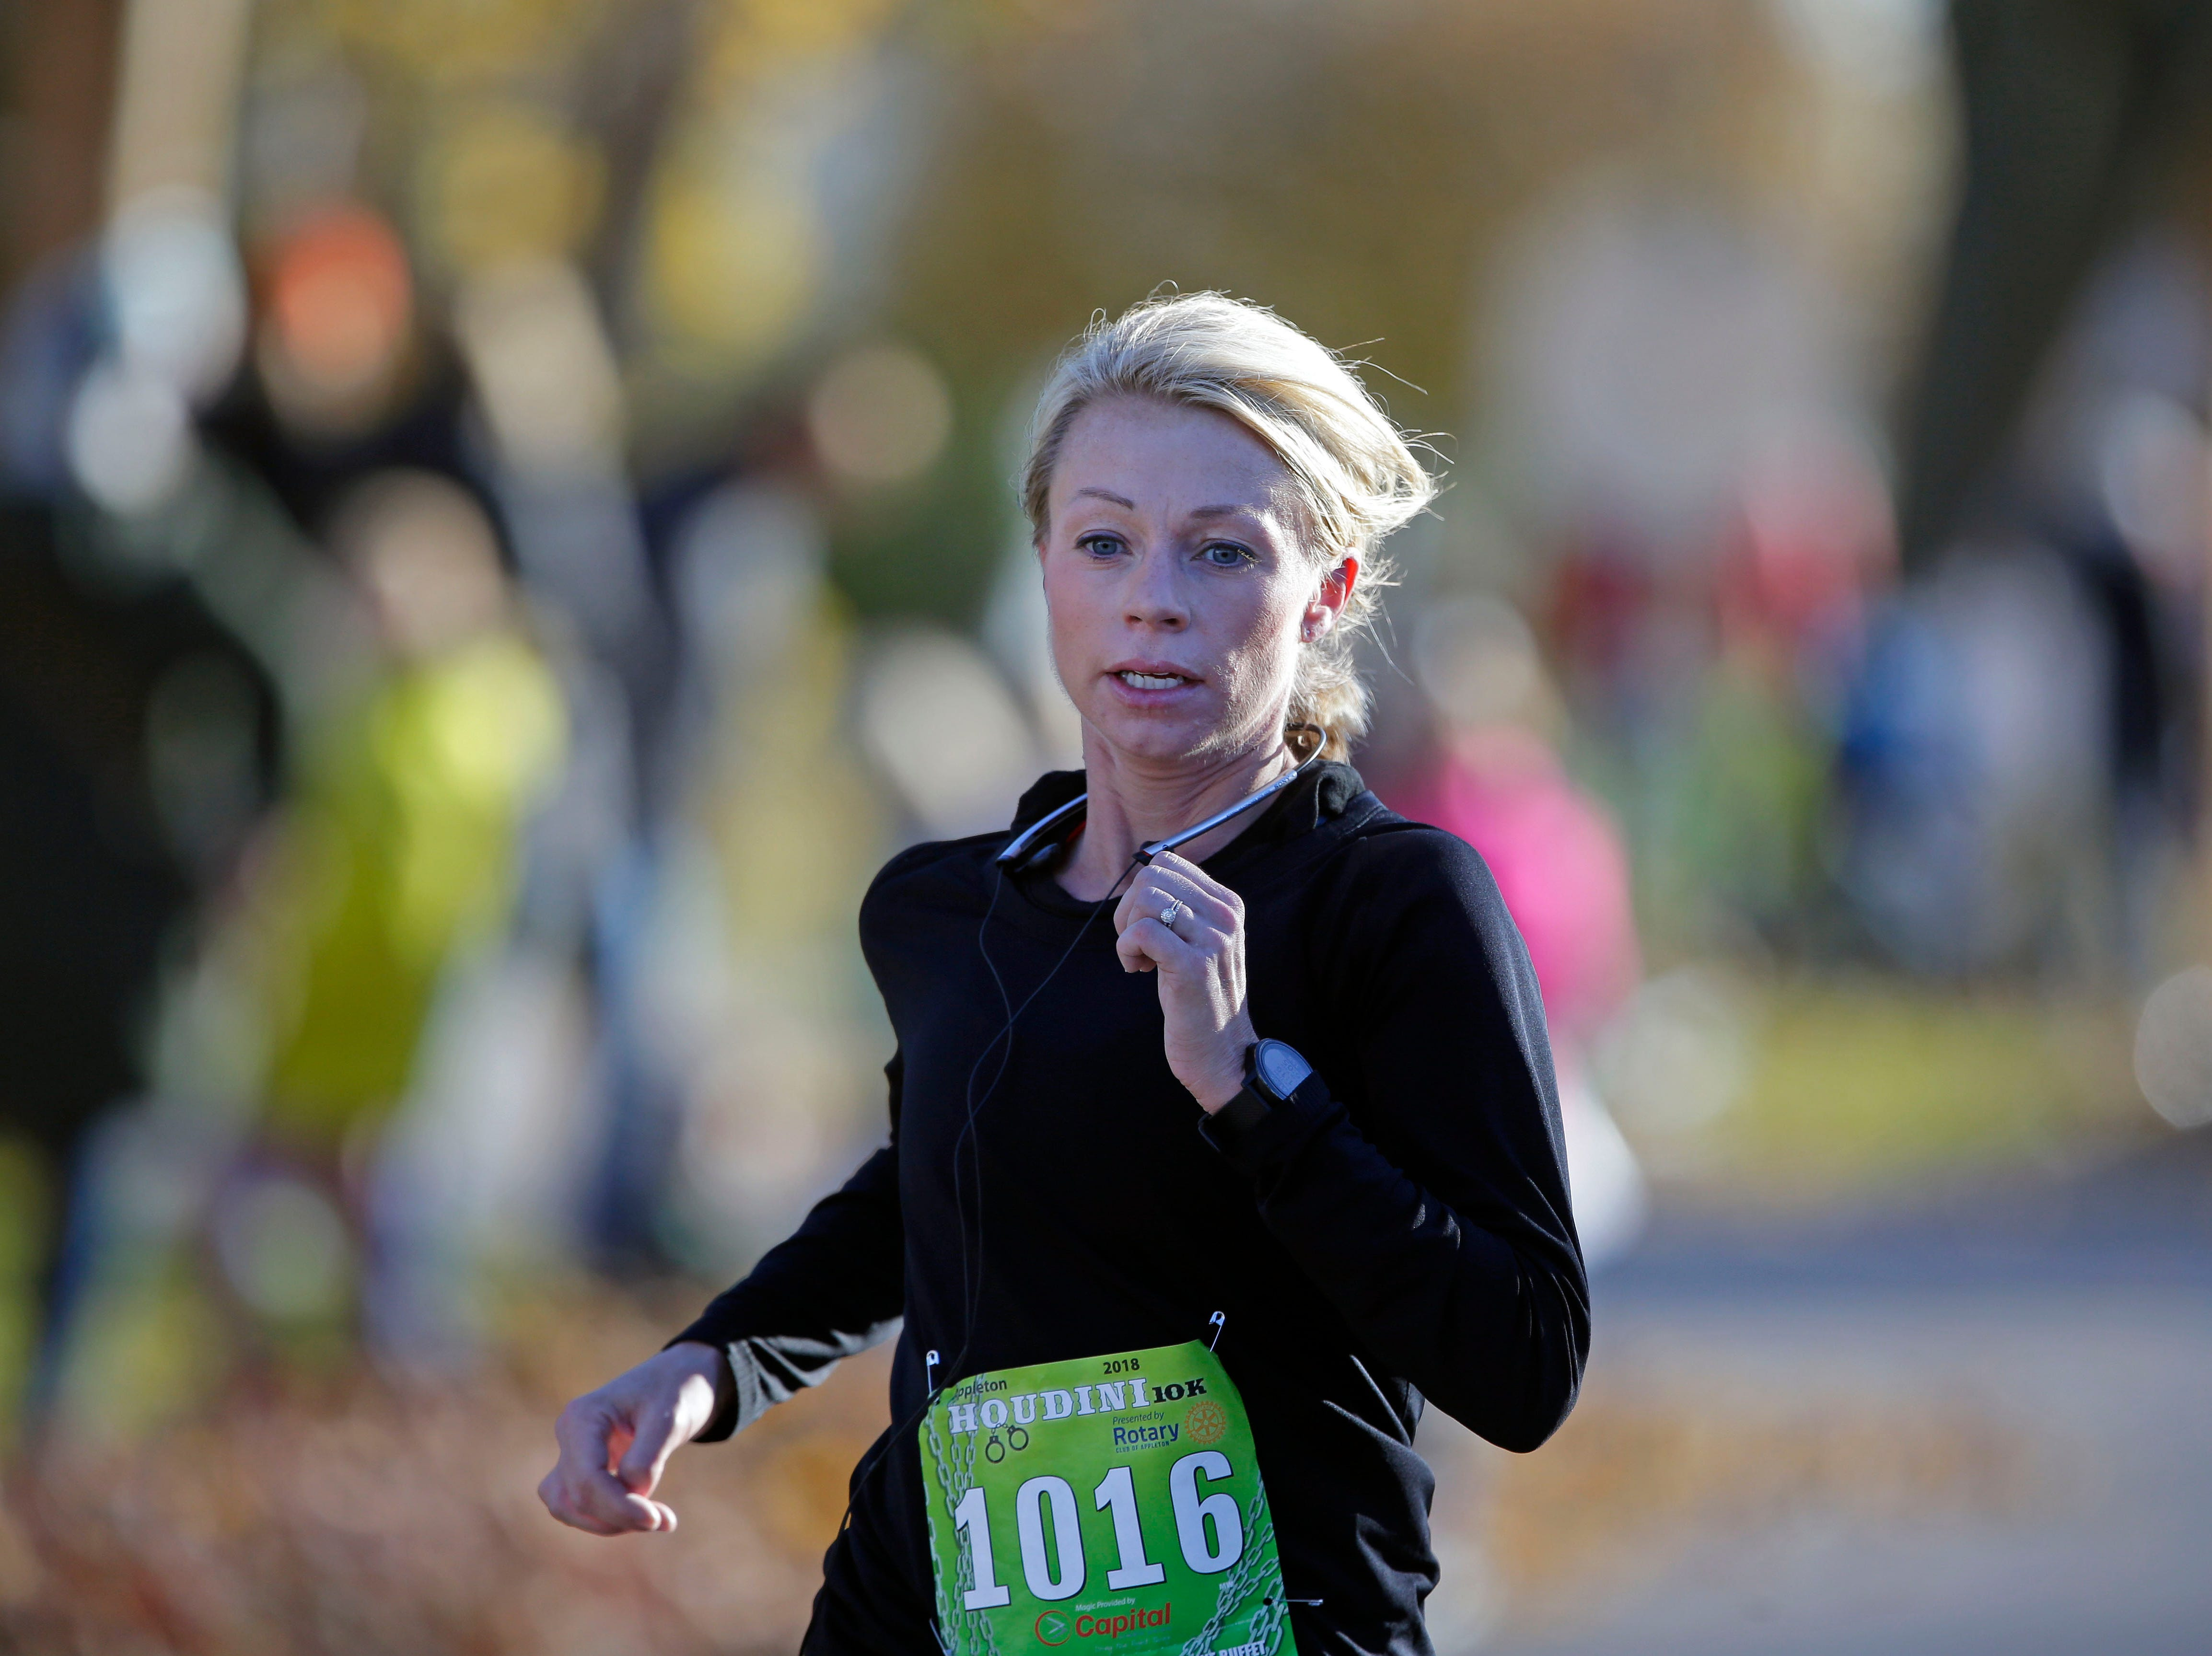 Kristin Oehlke finishes second in the women's division as the 4th annual Appleton Houdini 10K takes place Saturday, November 3, 2018, in Appleton, Wis.